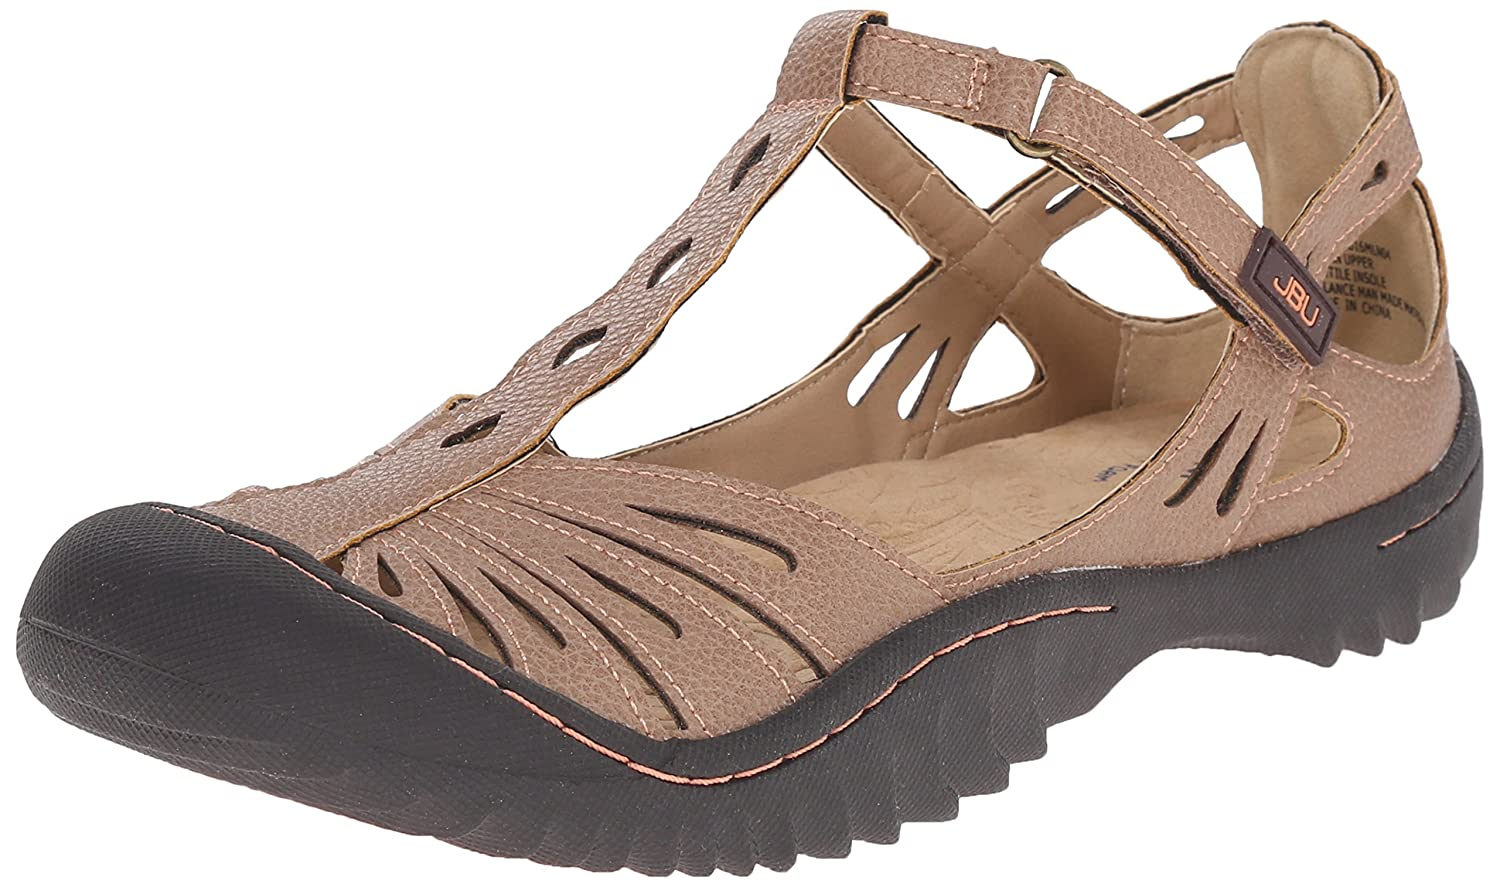 JBU by Jambu Women's Melon Flat